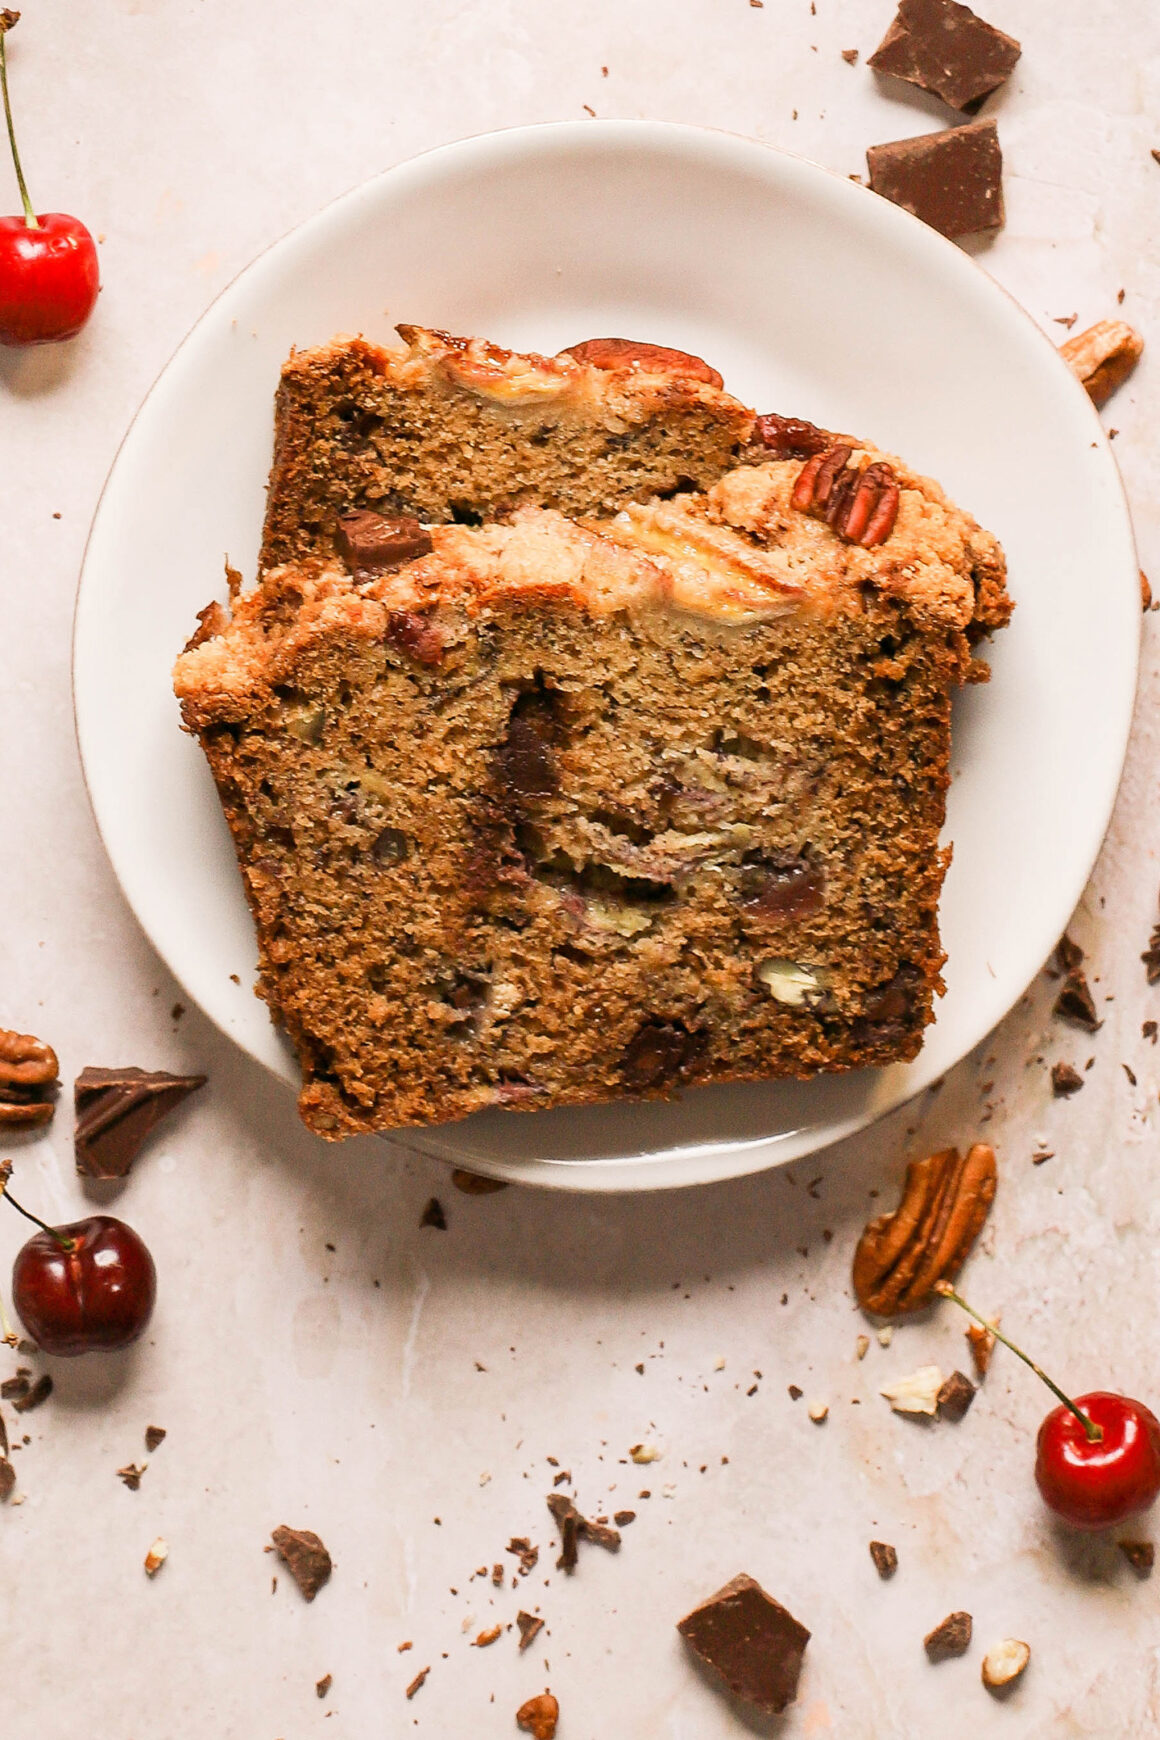 banana bread with cherries and pecans